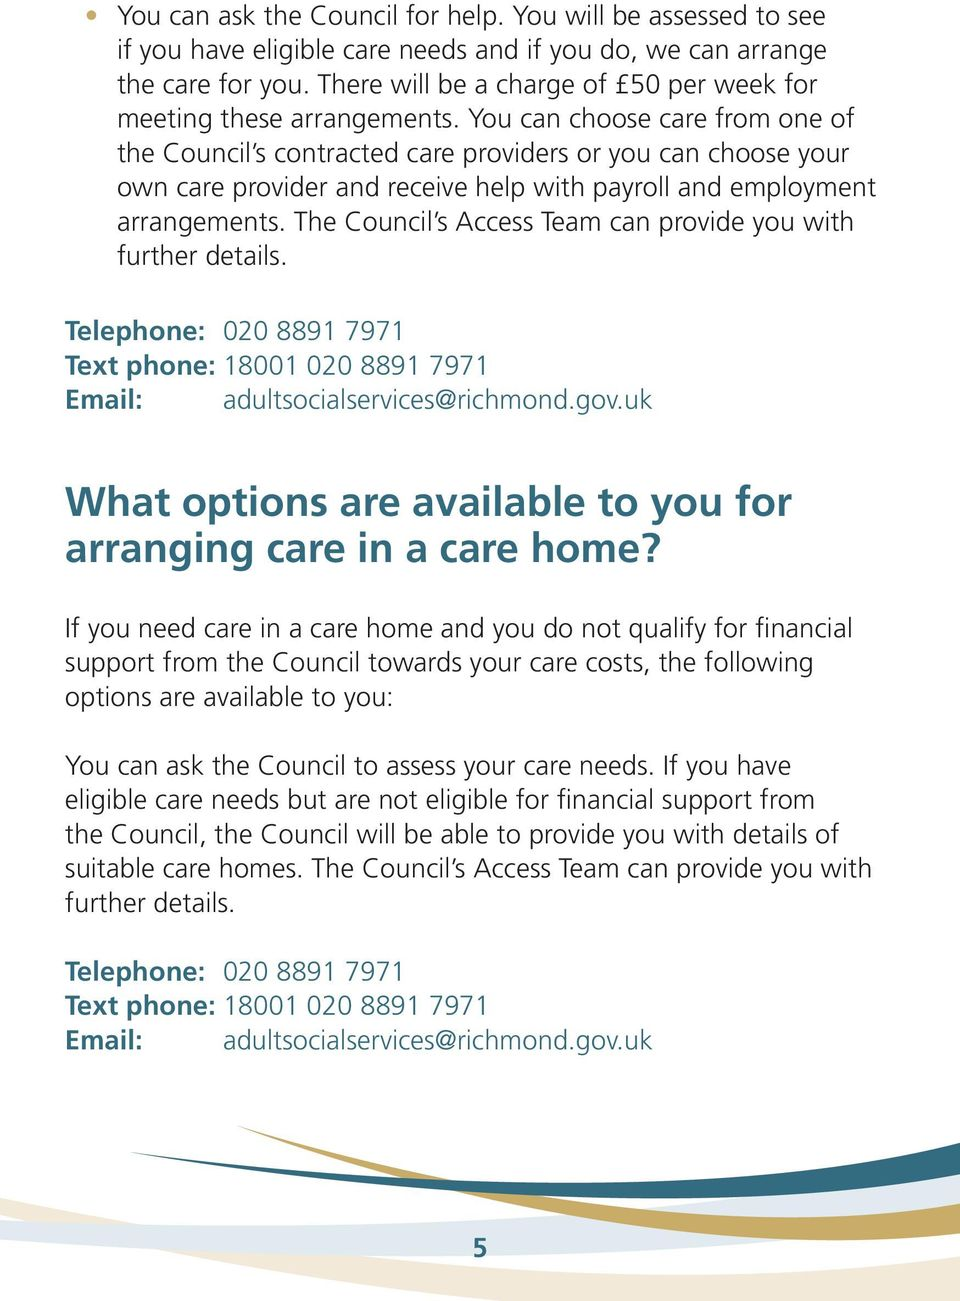 You can choose care from one of the Council s contracted care providers or you can choose your own care provider and receive help with payroll and employment arrangements.